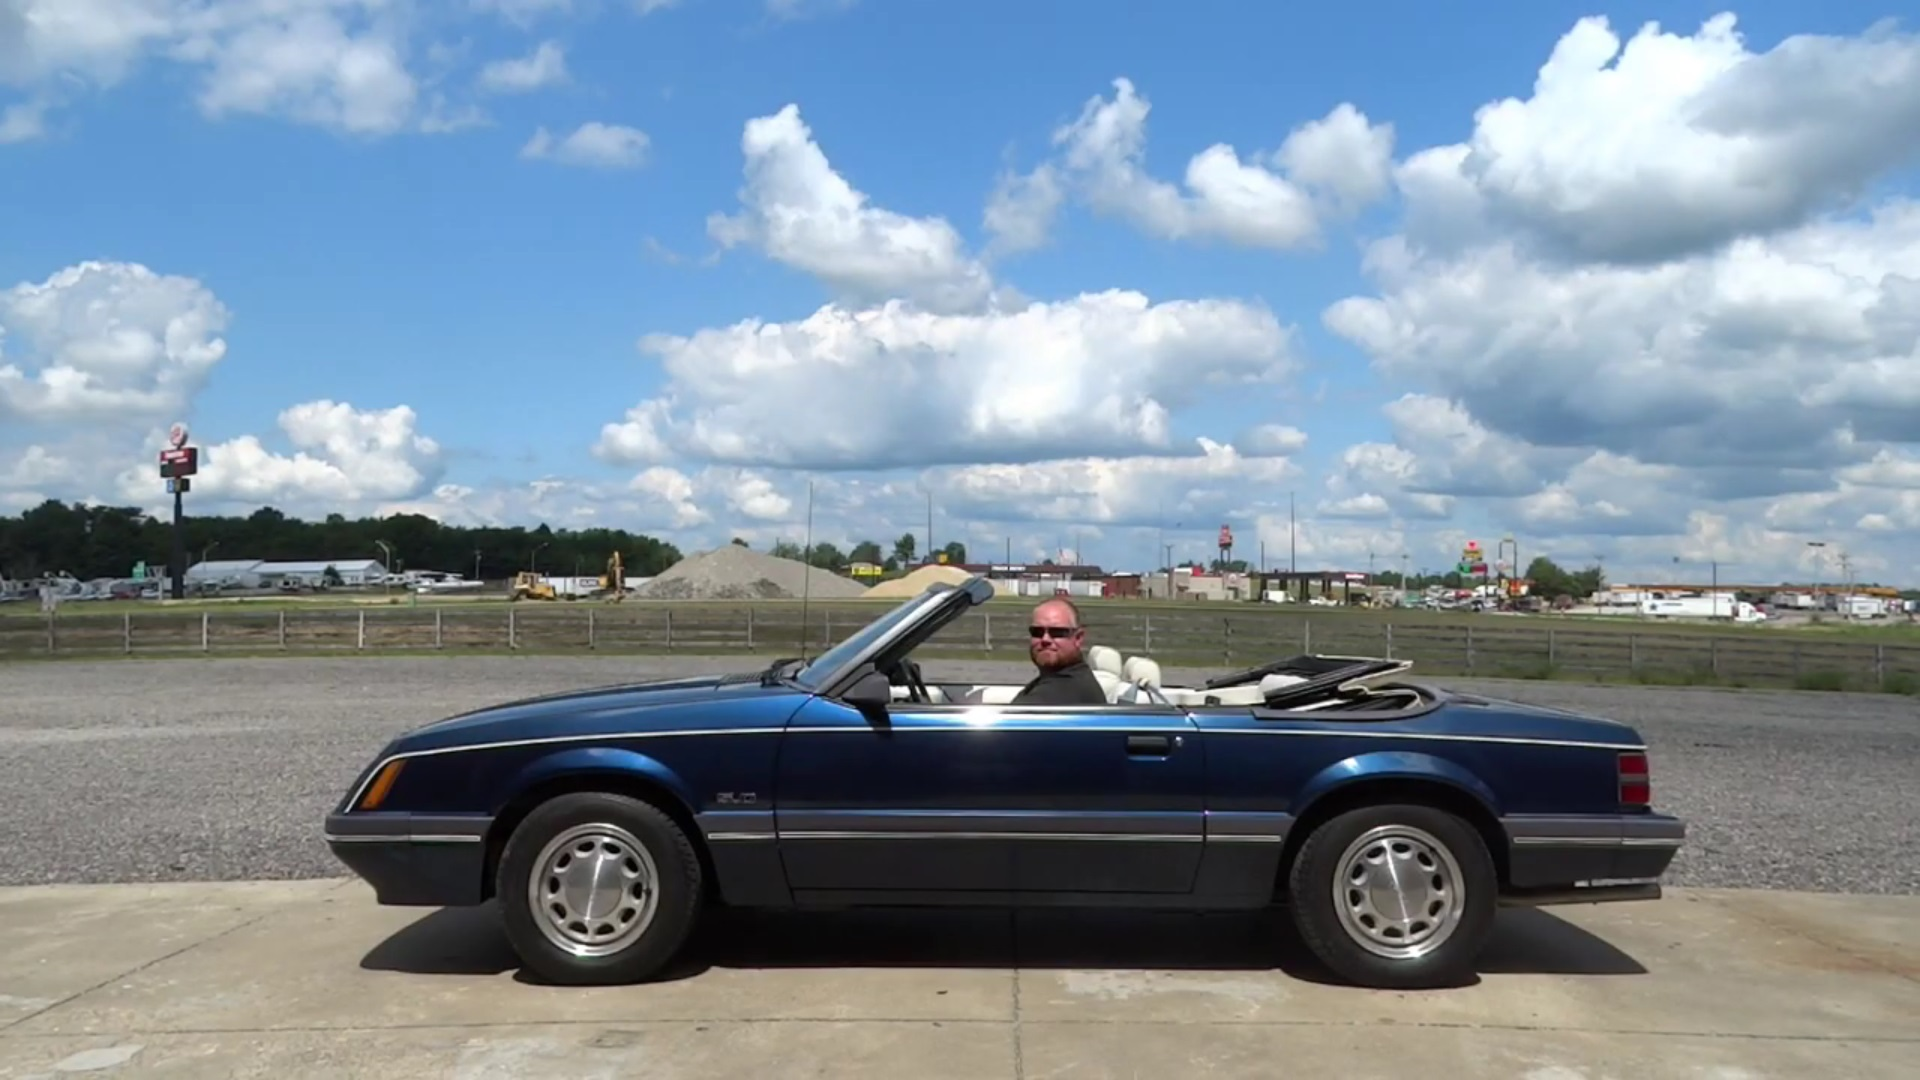 Video: 1985 Ford Mustang Full Tour